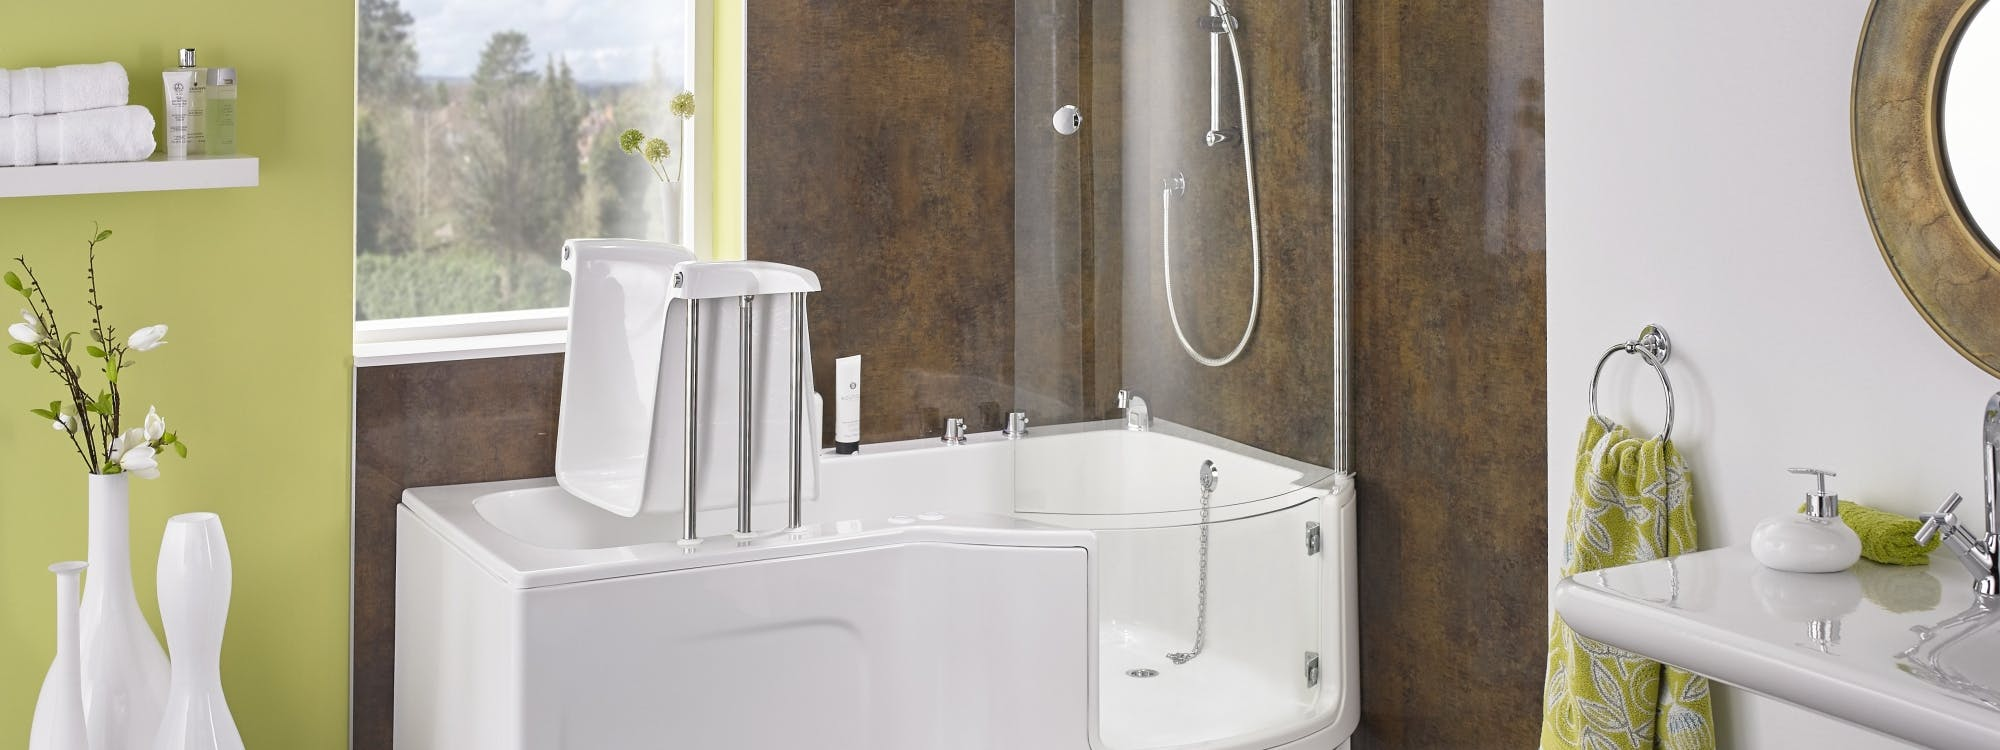 stylish and accessible bathrooms; designed and installed